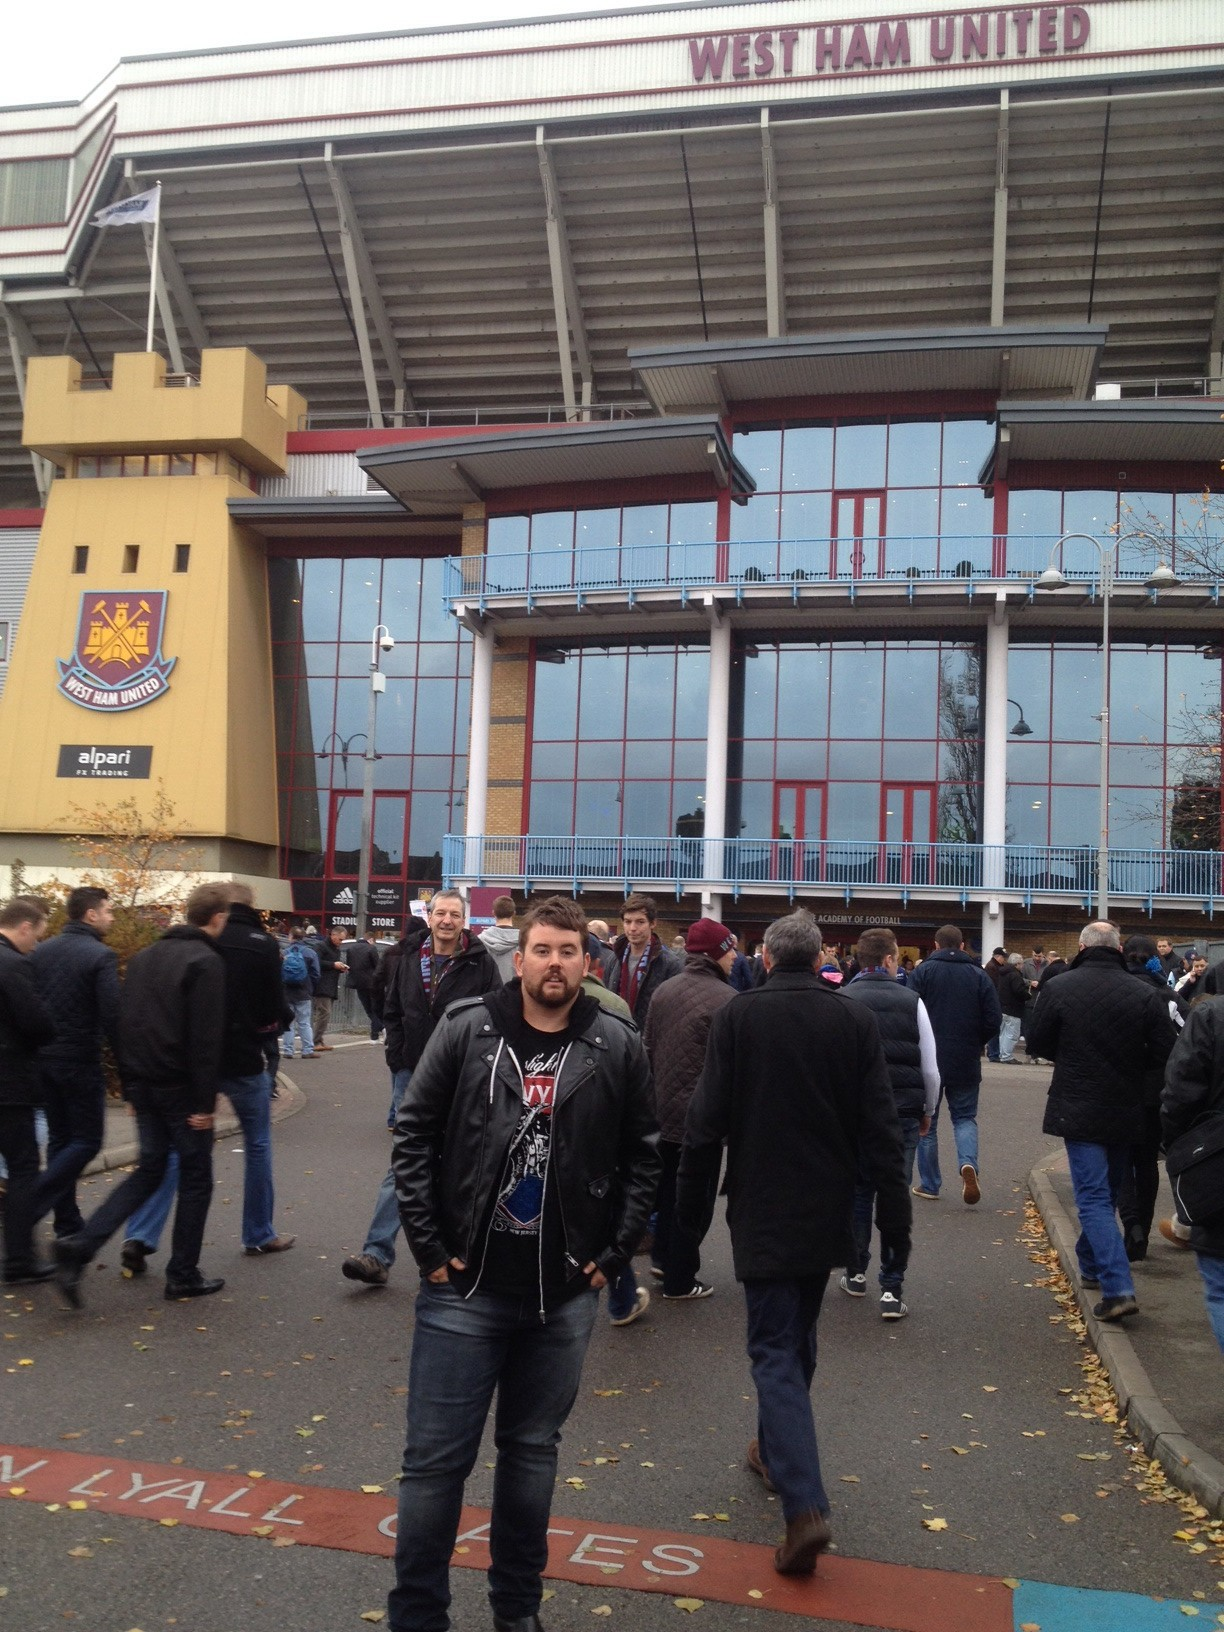 Outside the ground